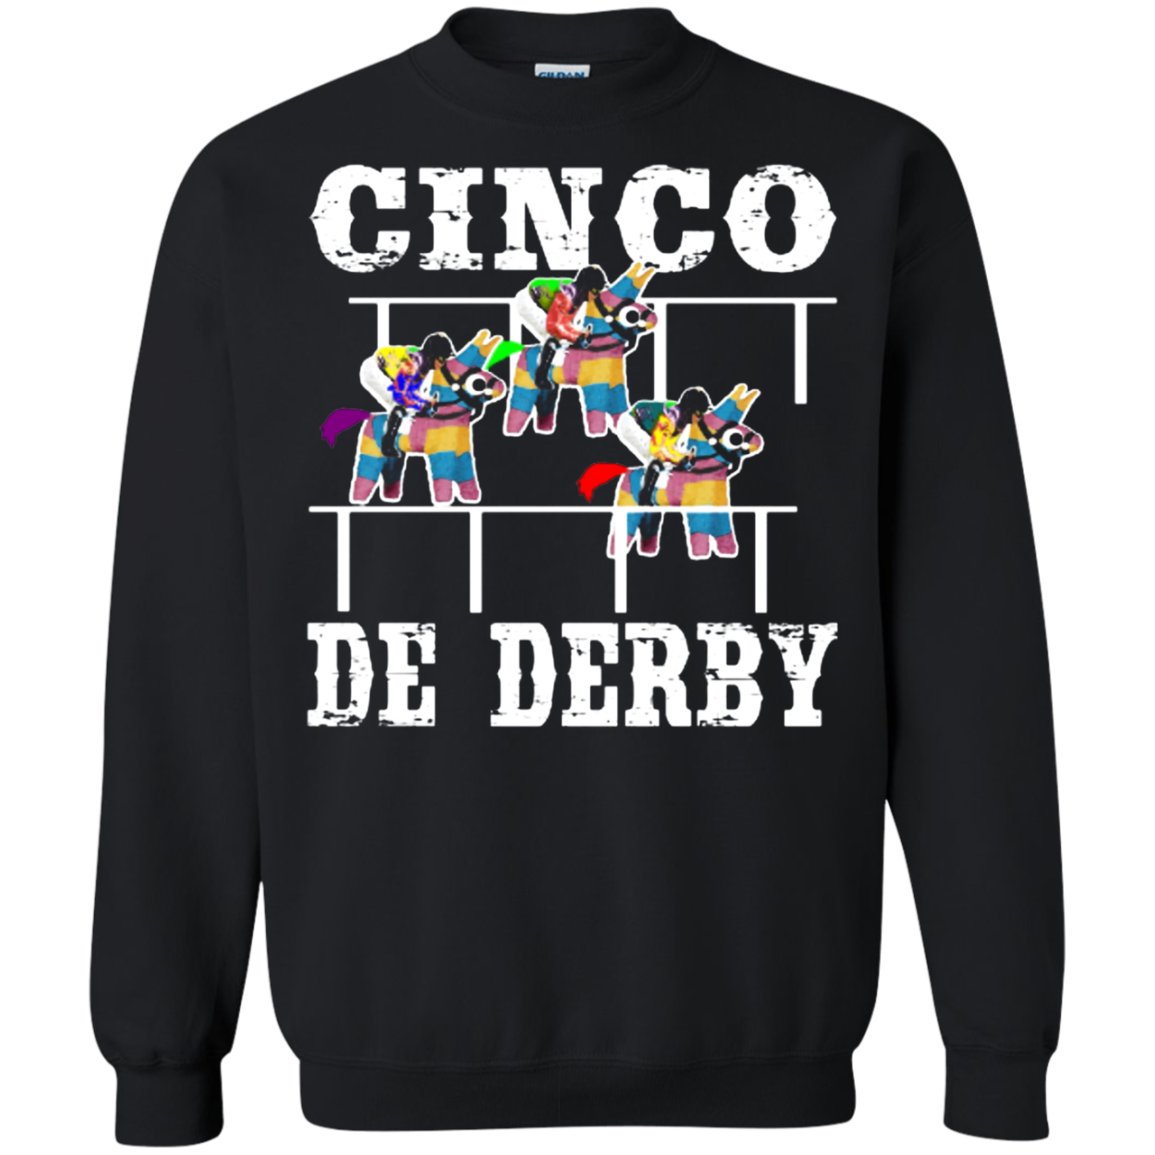 Cinco De Derby De Mayo Kentucky Horse Race Mexican shirt Sweatshirt Men